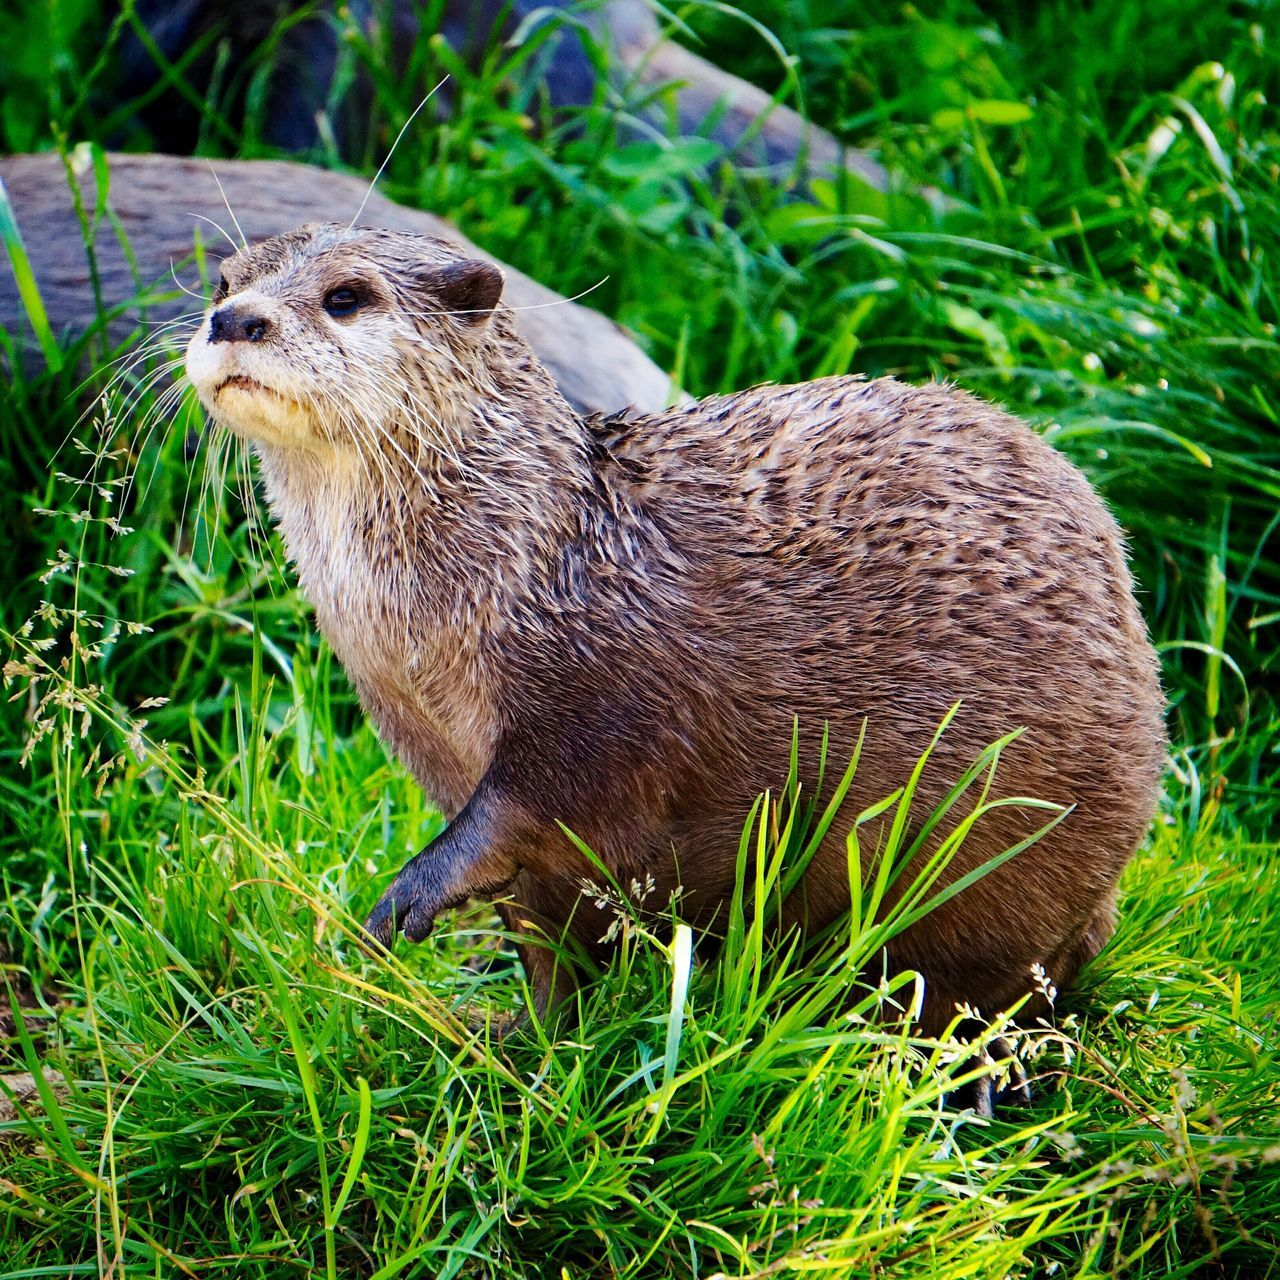 Animal Themes One Animal Grass Animals In The Wild Field Animal Wildlife No People Mammal Outdoors Nature Day Close-up Otter Otters Animal Head  Nature Animals In The Wild Wildlife Animal Photography